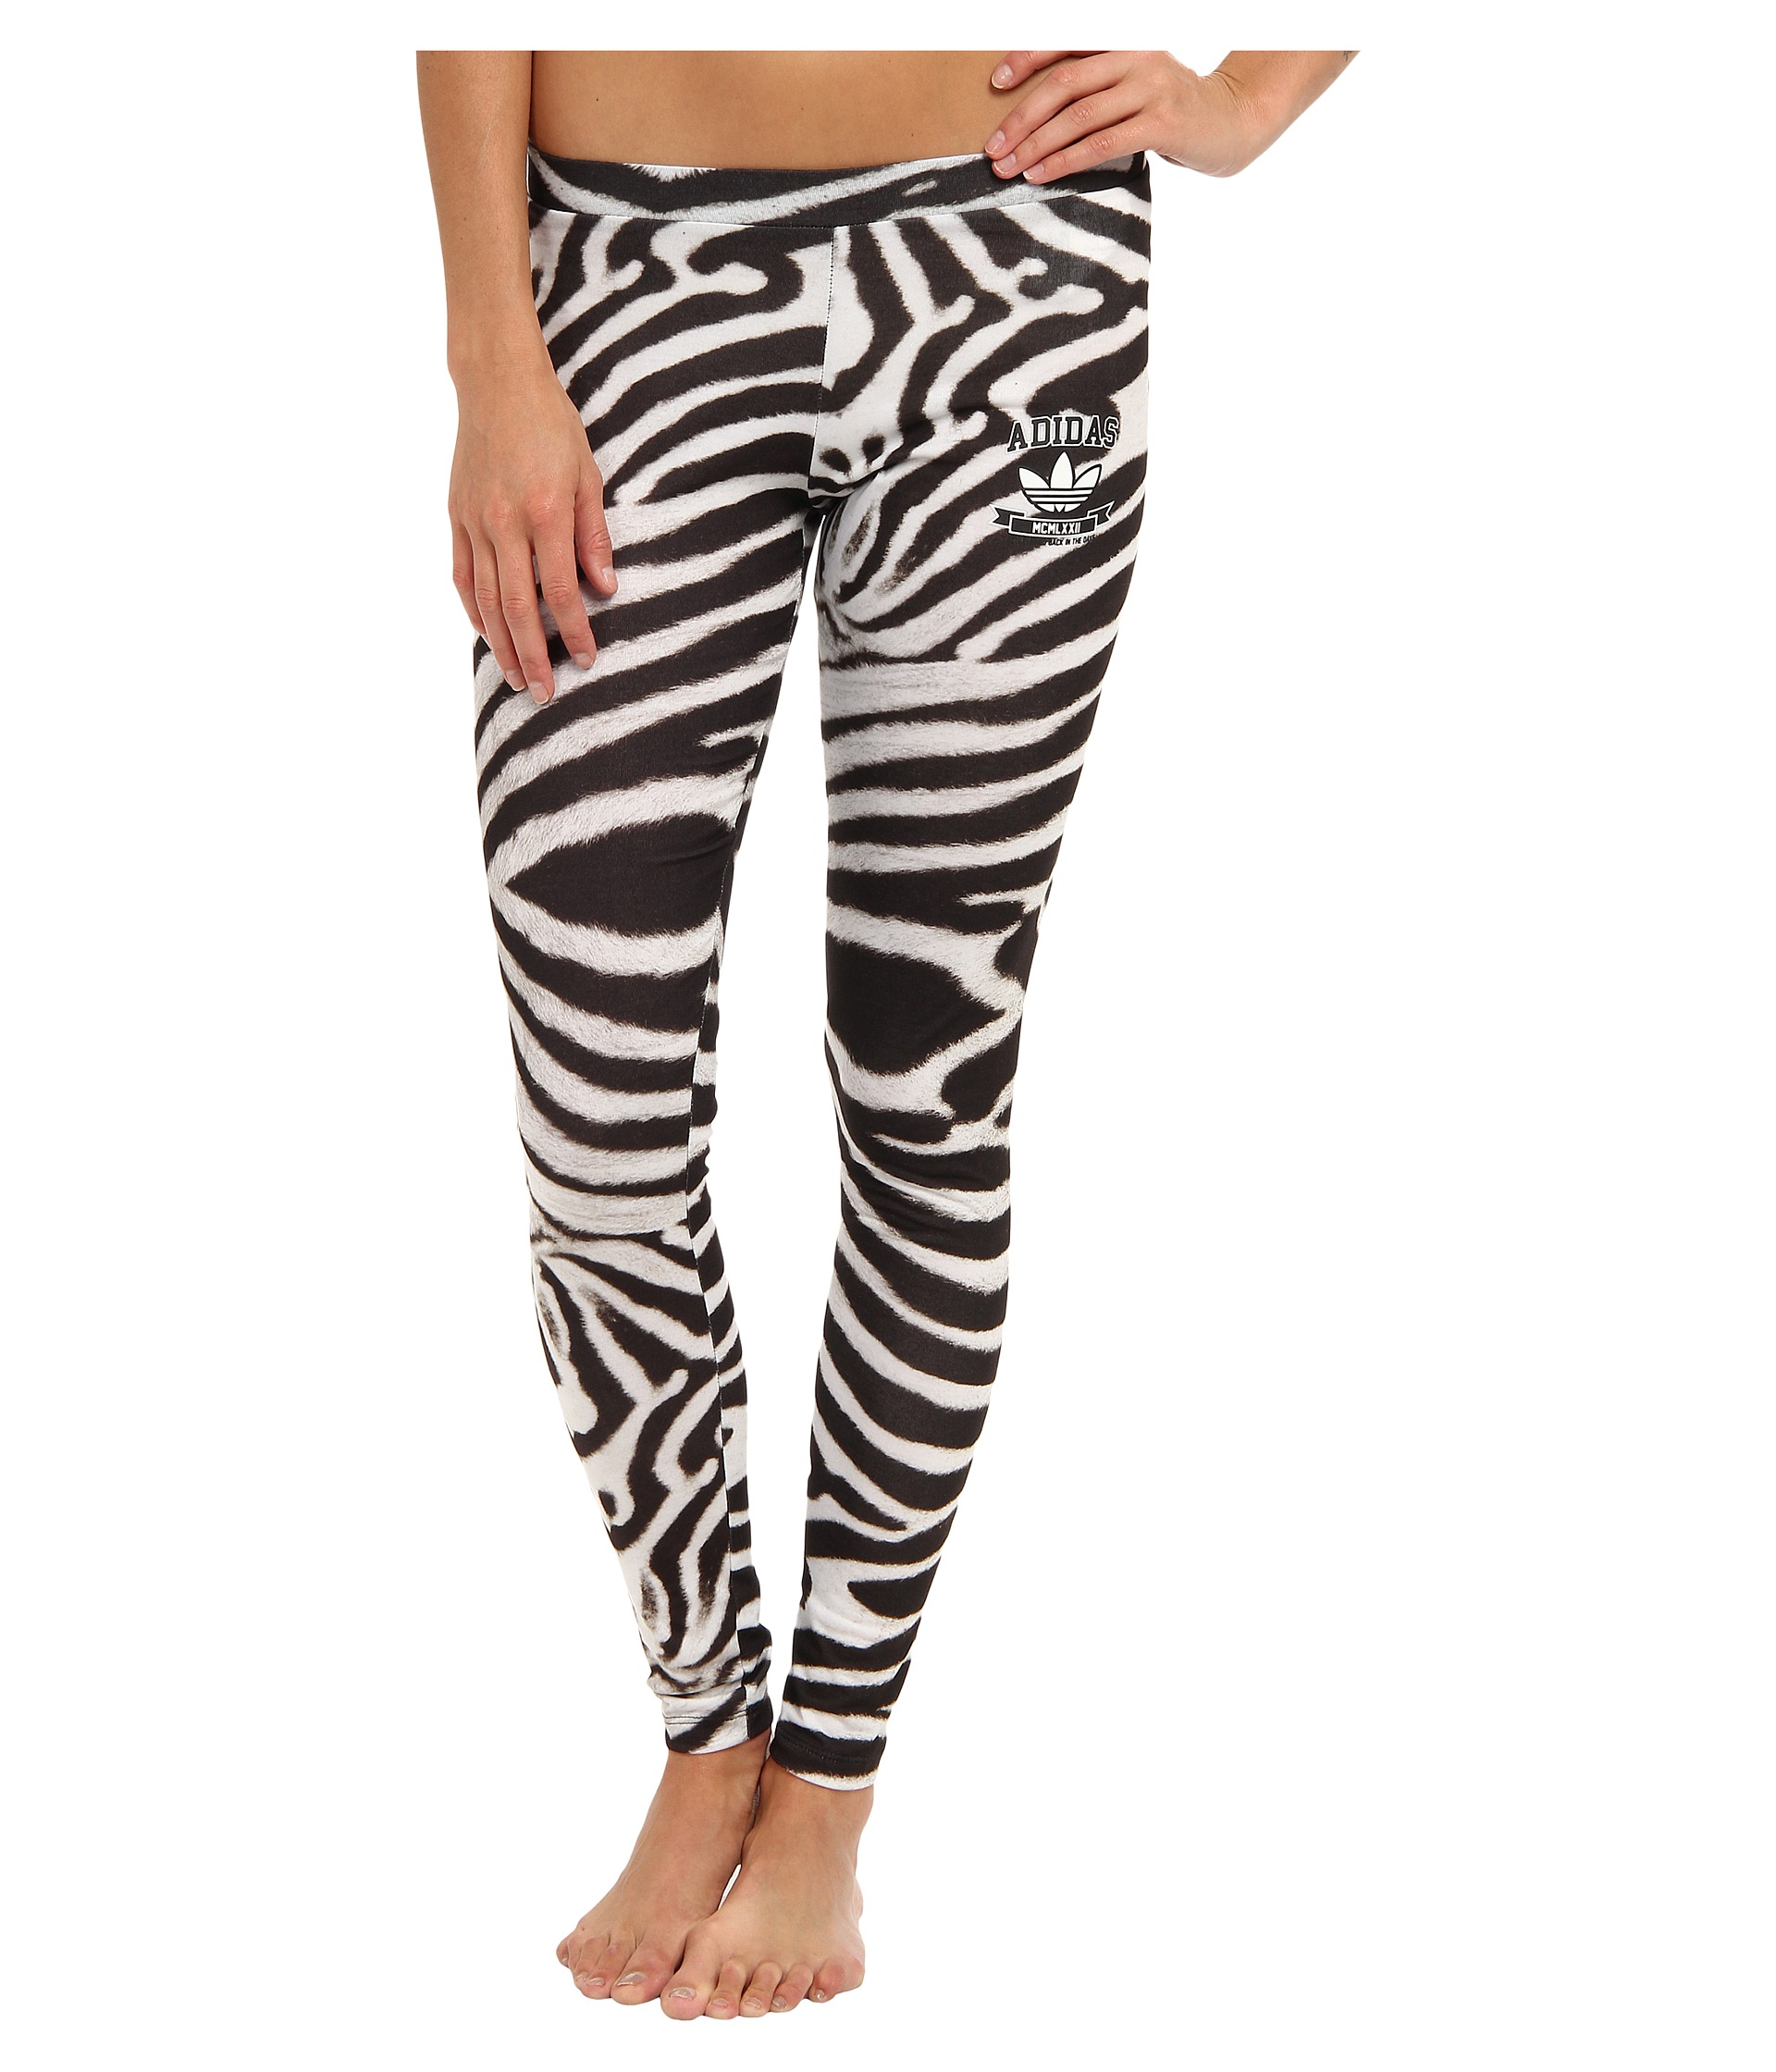 She'll be ready to take a walk on the wild side in these Zebra Leggings from Happy by Pink Chicken. With an allover zebra print, these leggings will add instant charm to any outfit she pairs them with.4/5(2).